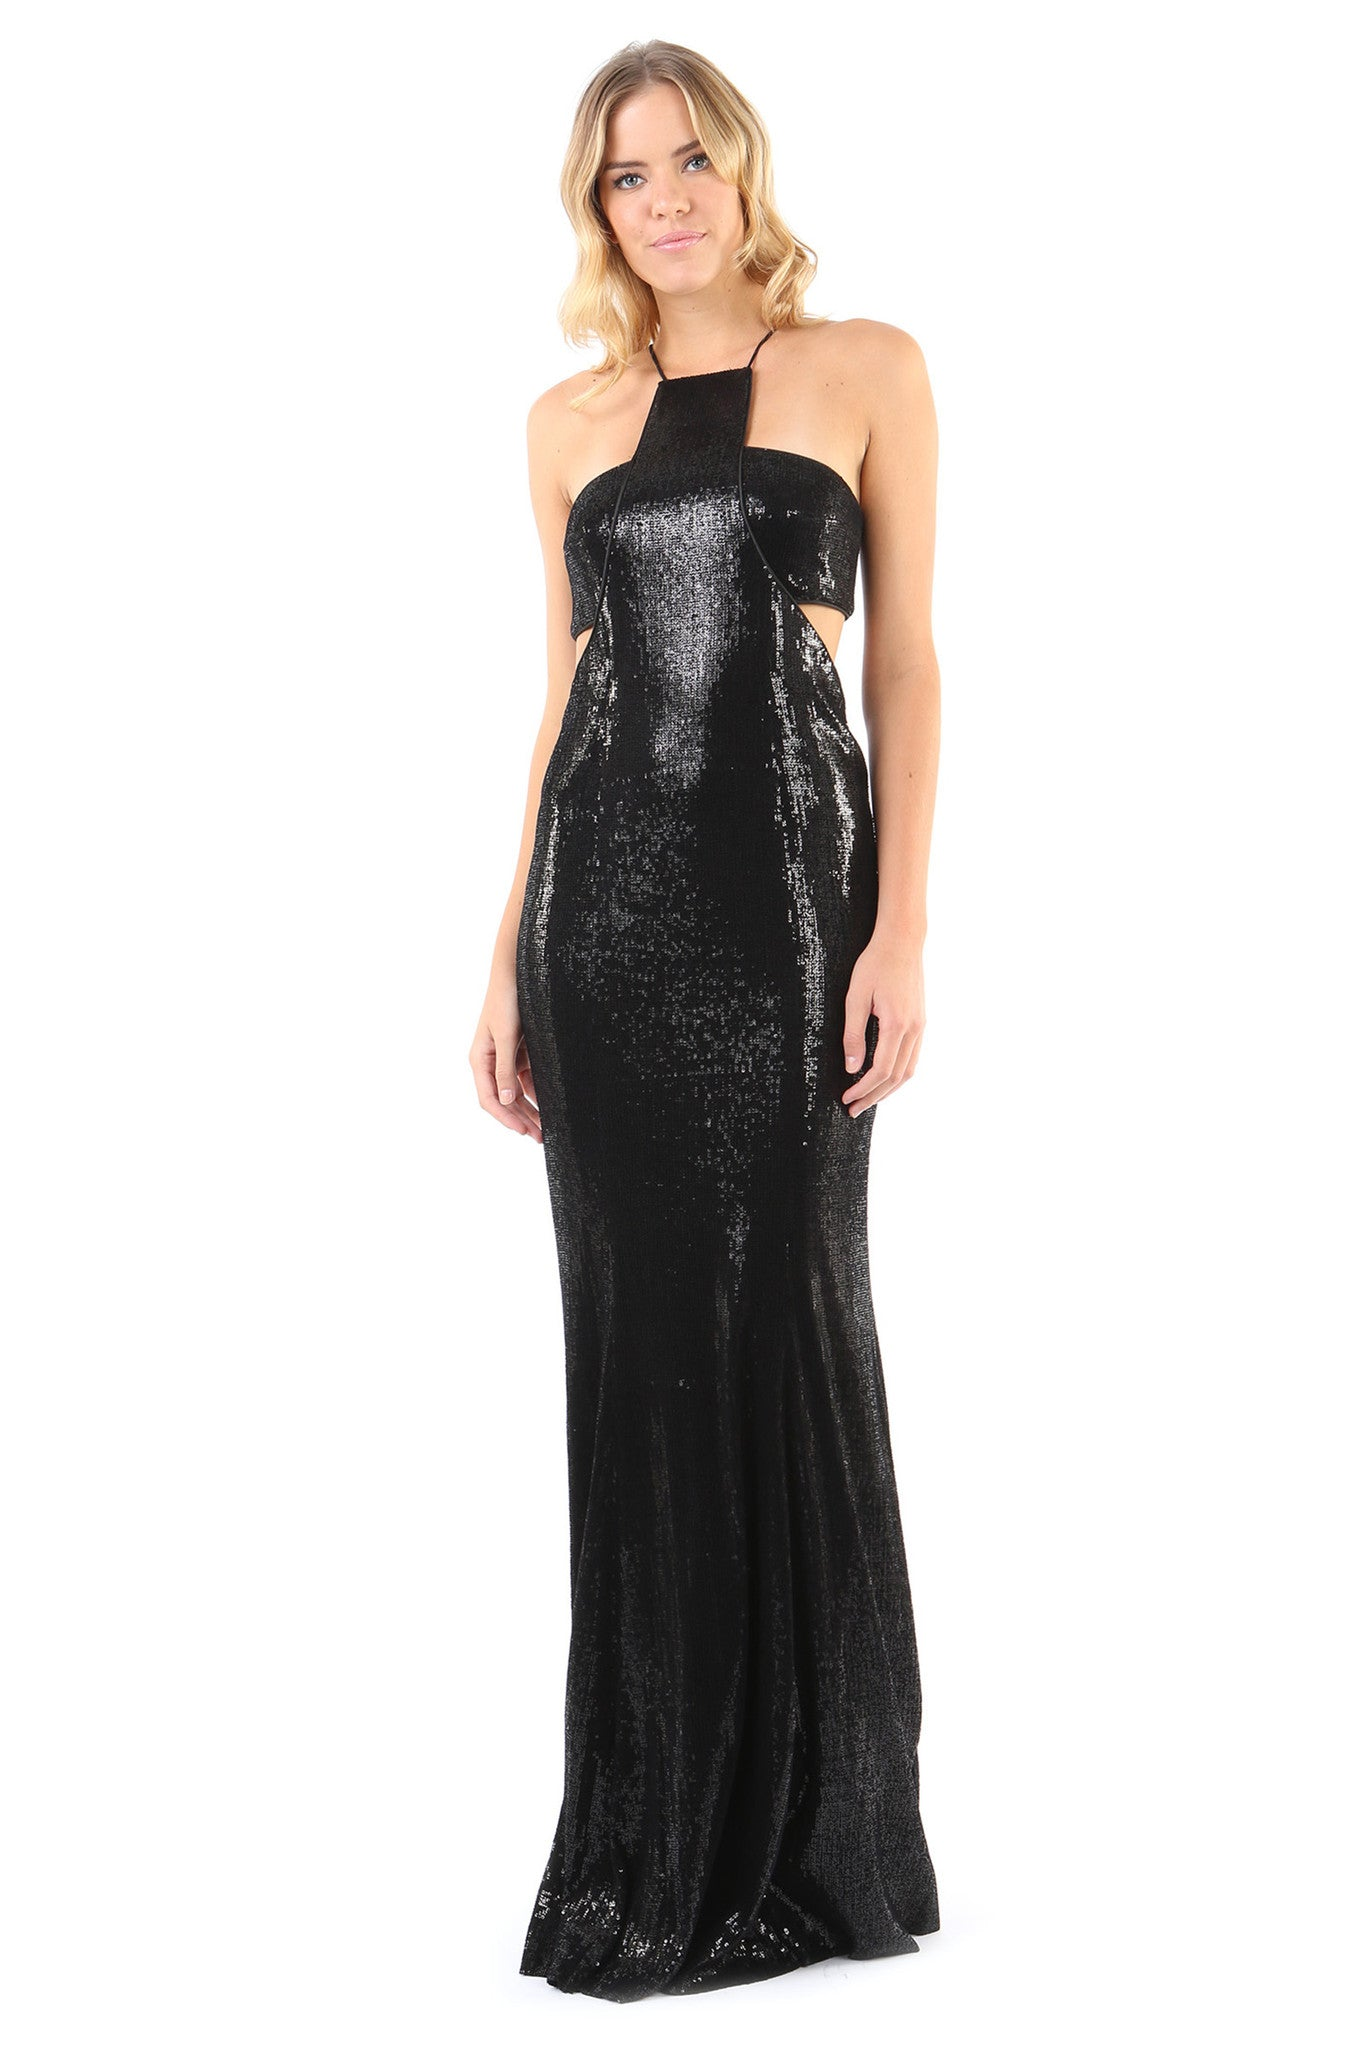 Jay Godfrey Black Sequin Gown with Cut-Outs - Front View